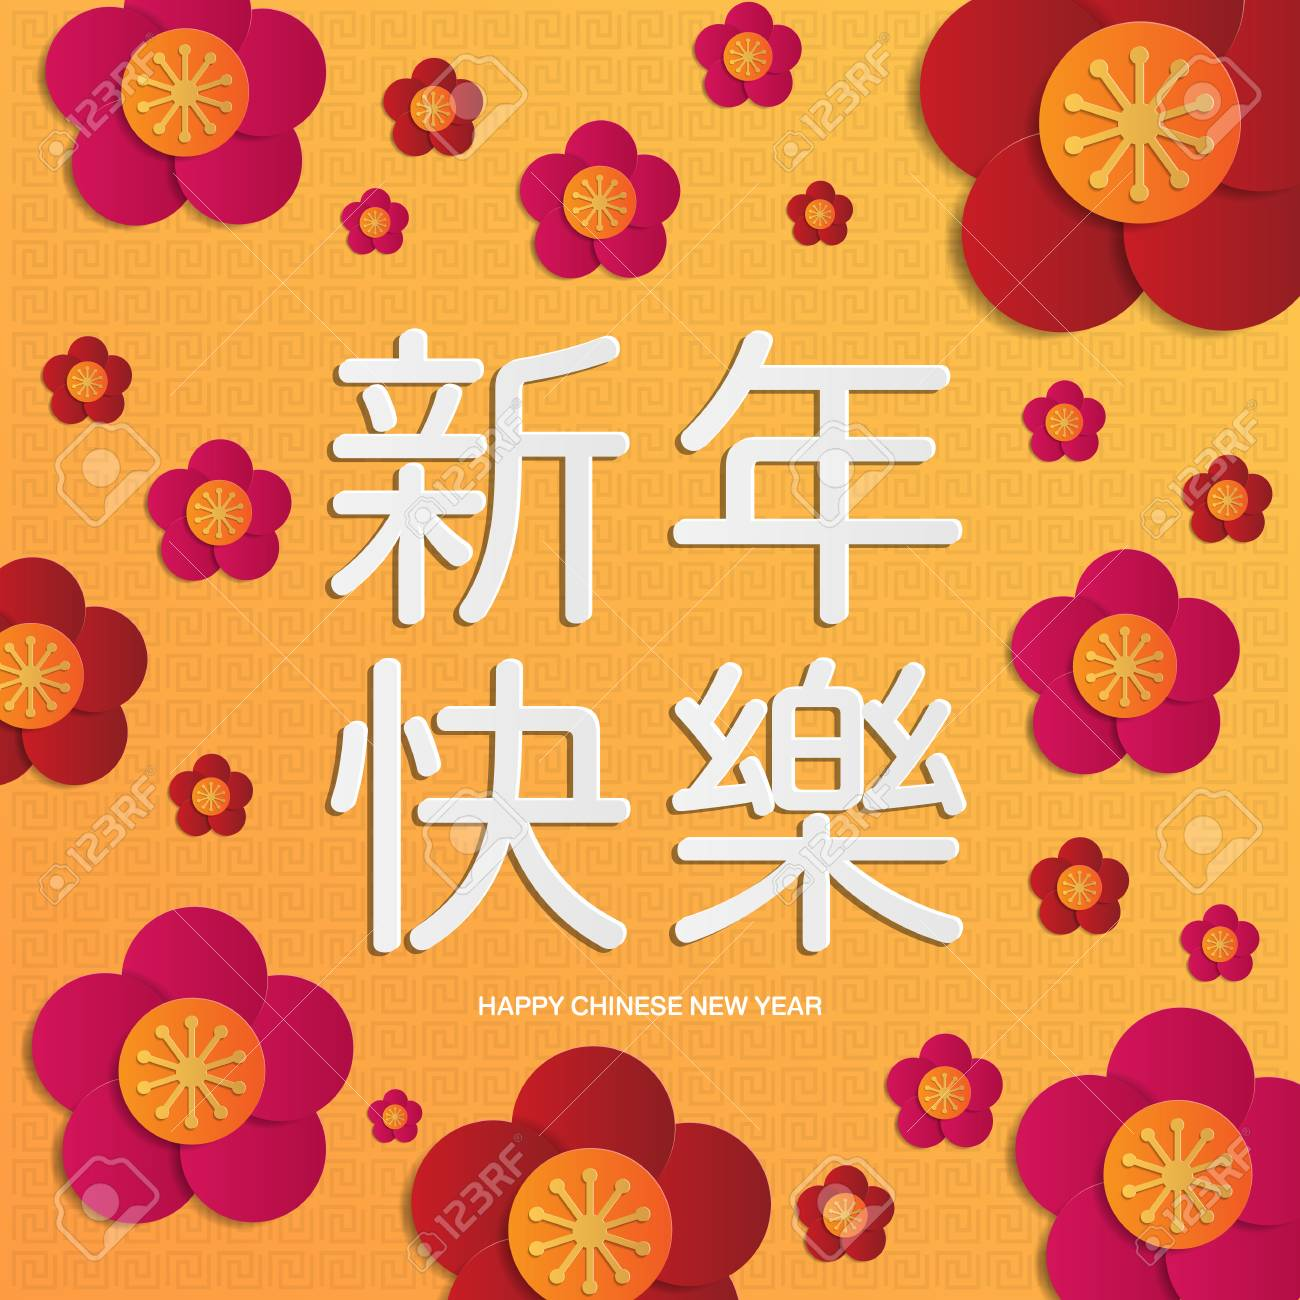 Chinese New Year Greeting Card With Cherry Blossom Paper Art